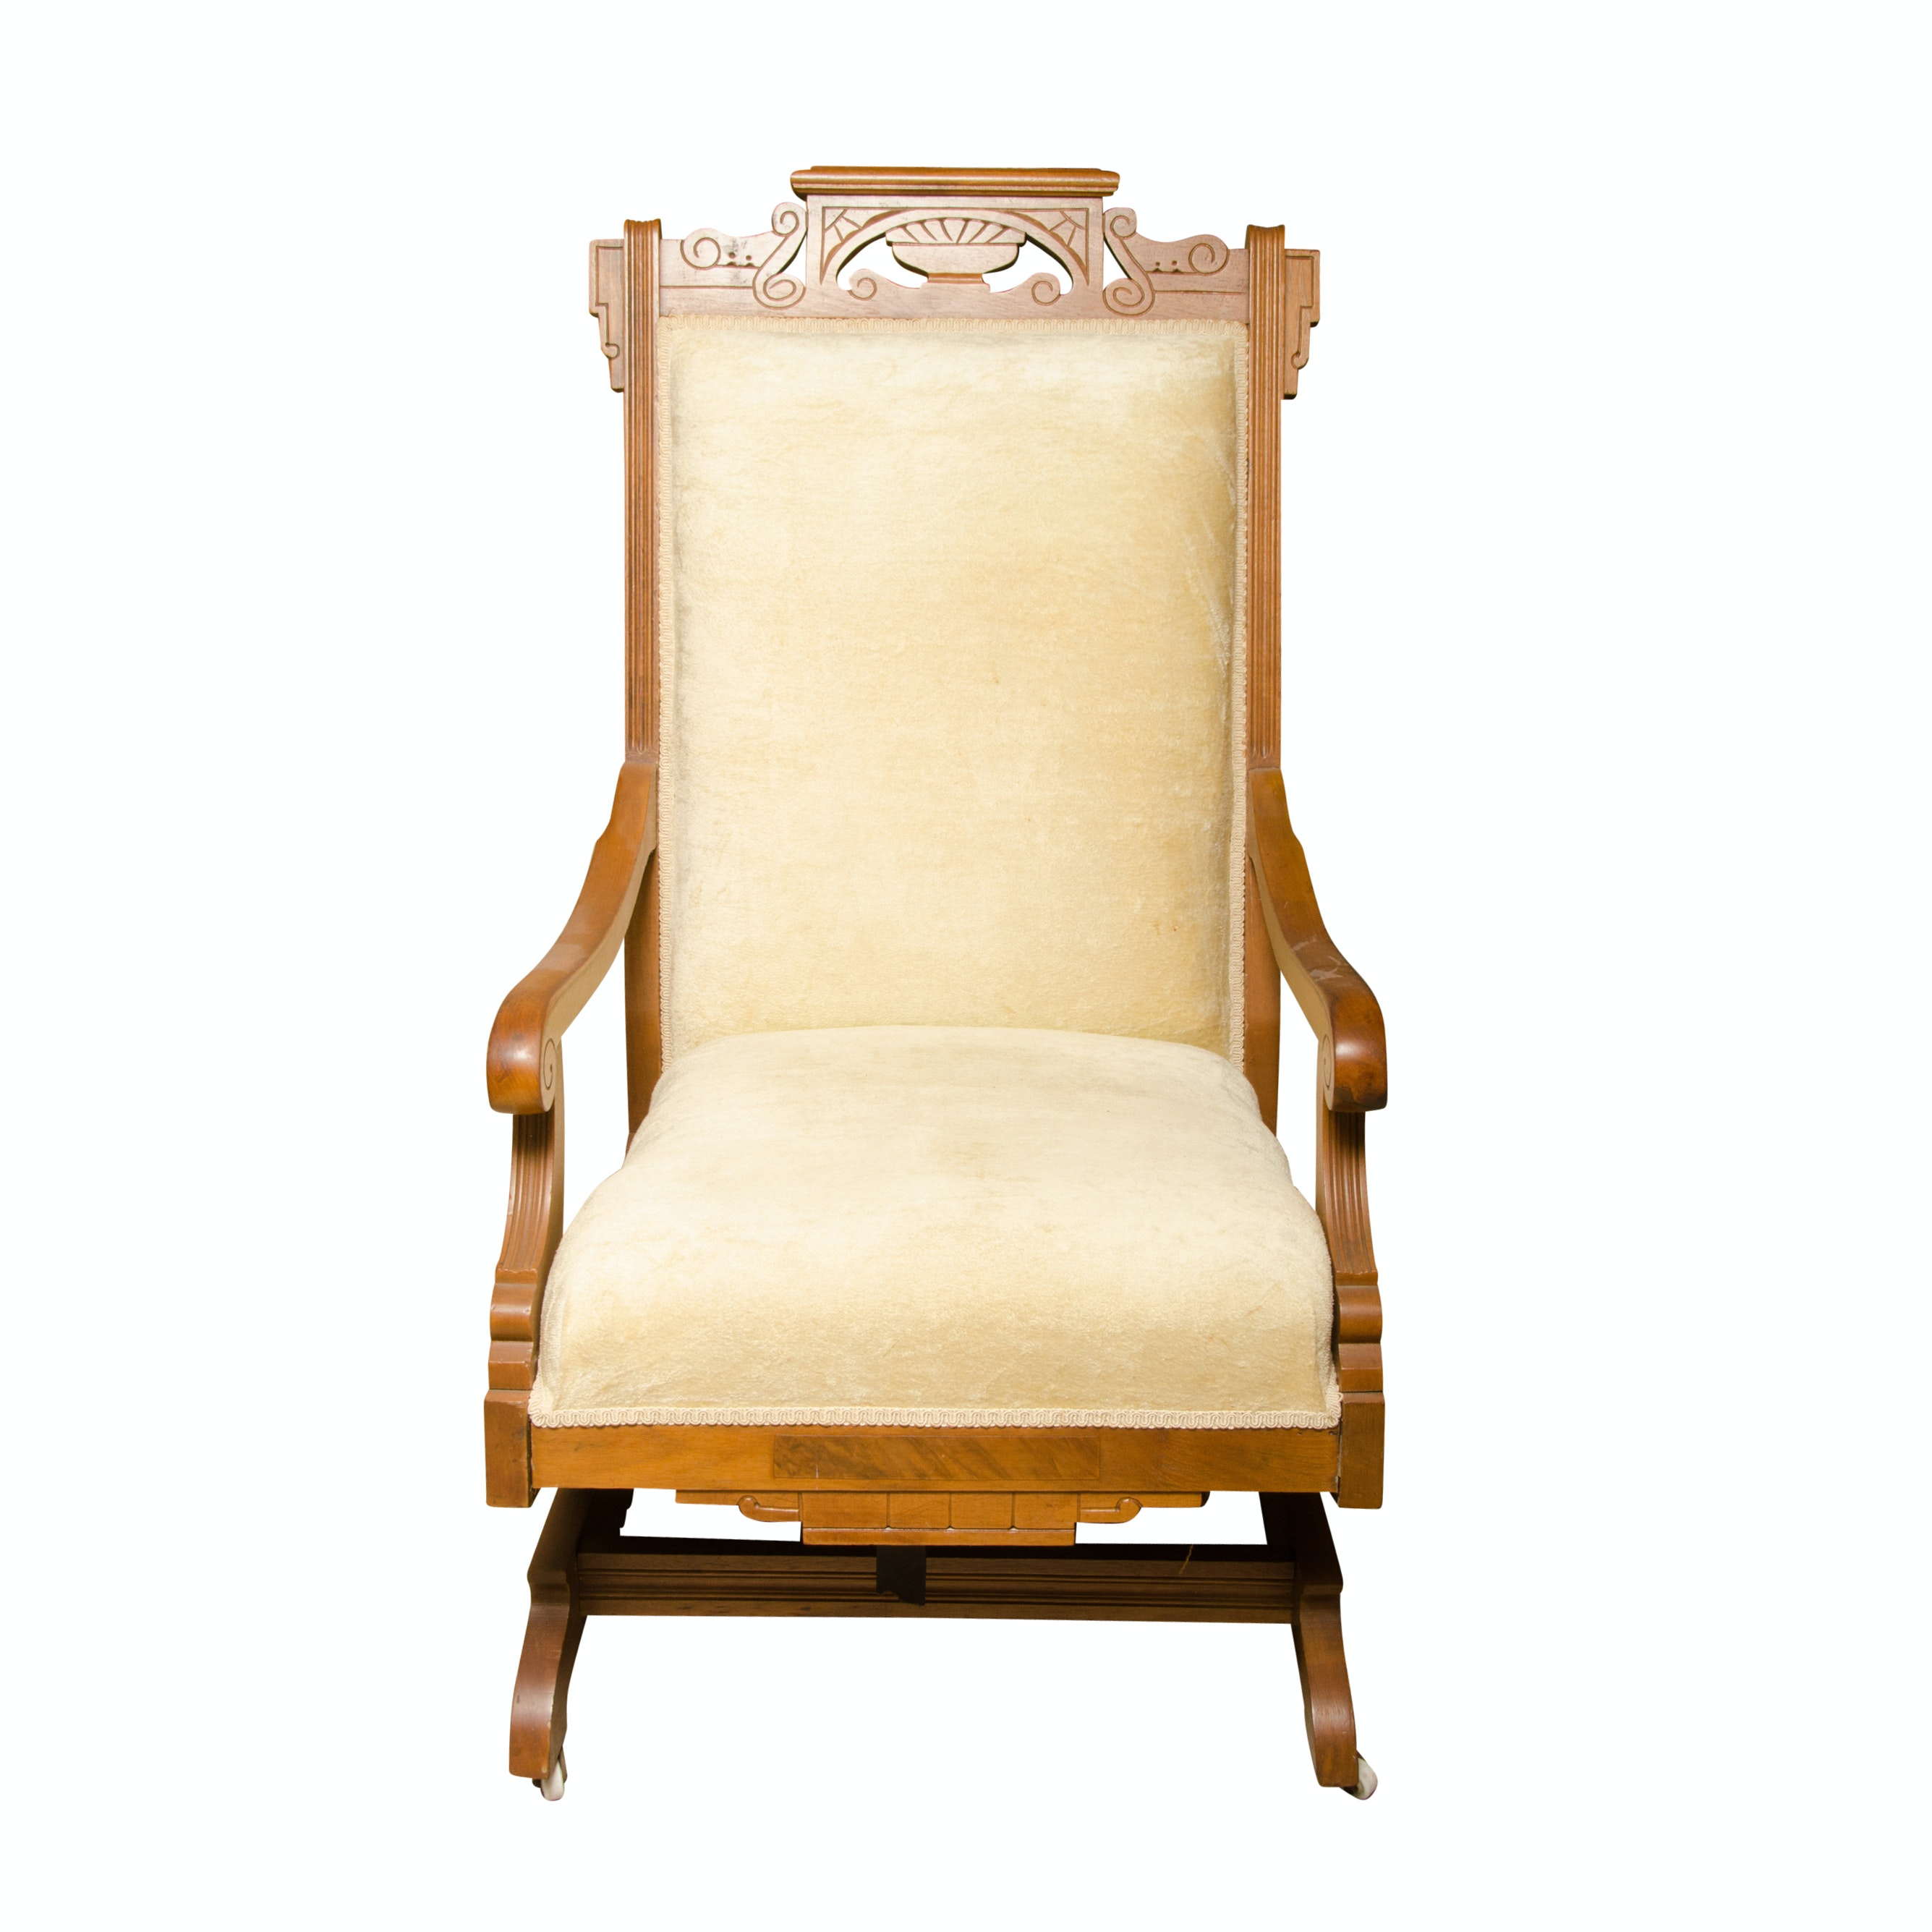 Wooden Glider Rocking Chair With Cream Upholstery ...